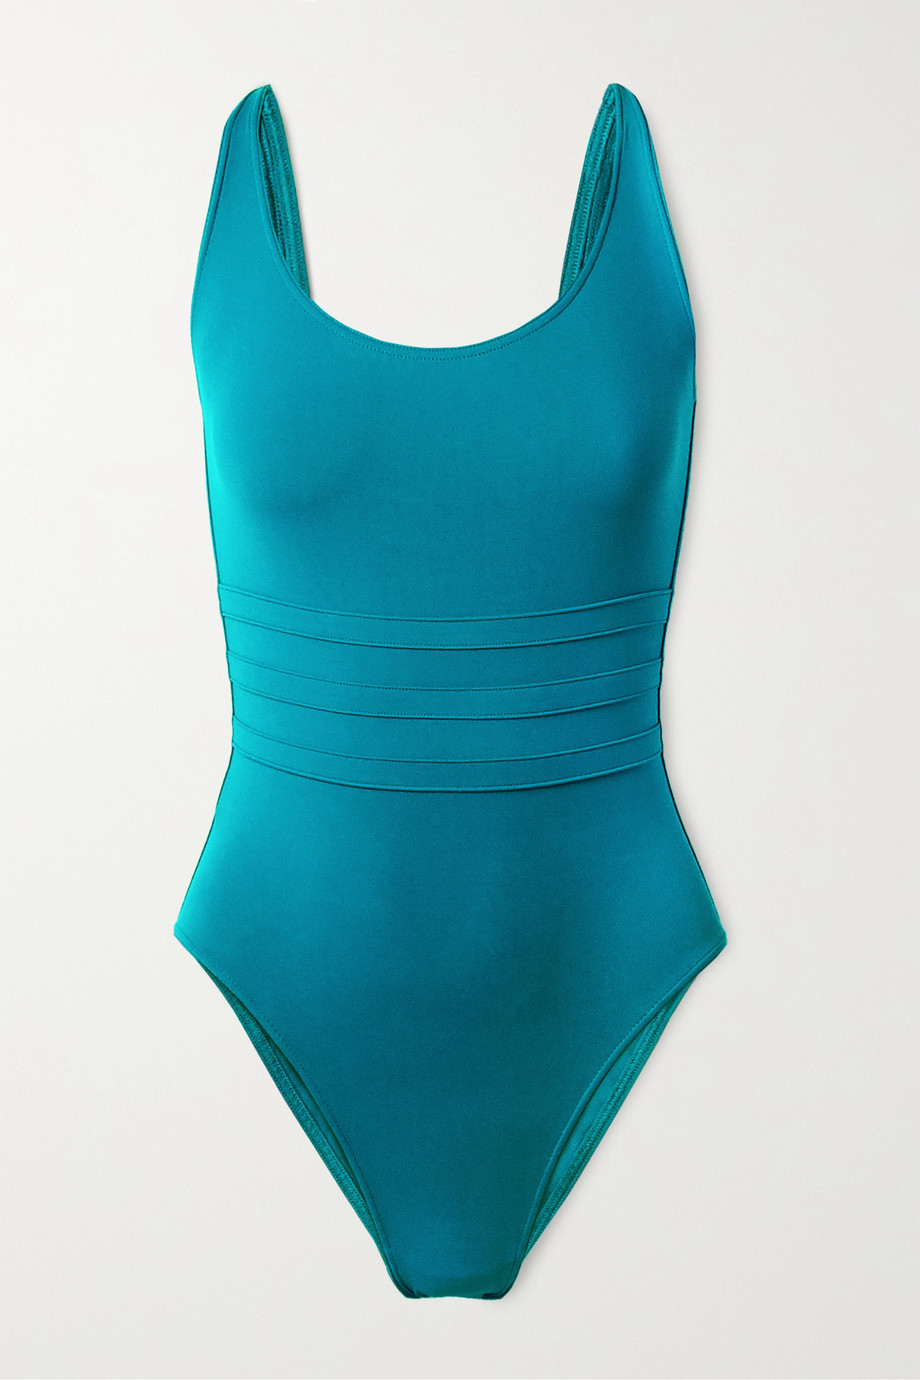 Eres Les Essentiels Asia paneled swimsuit